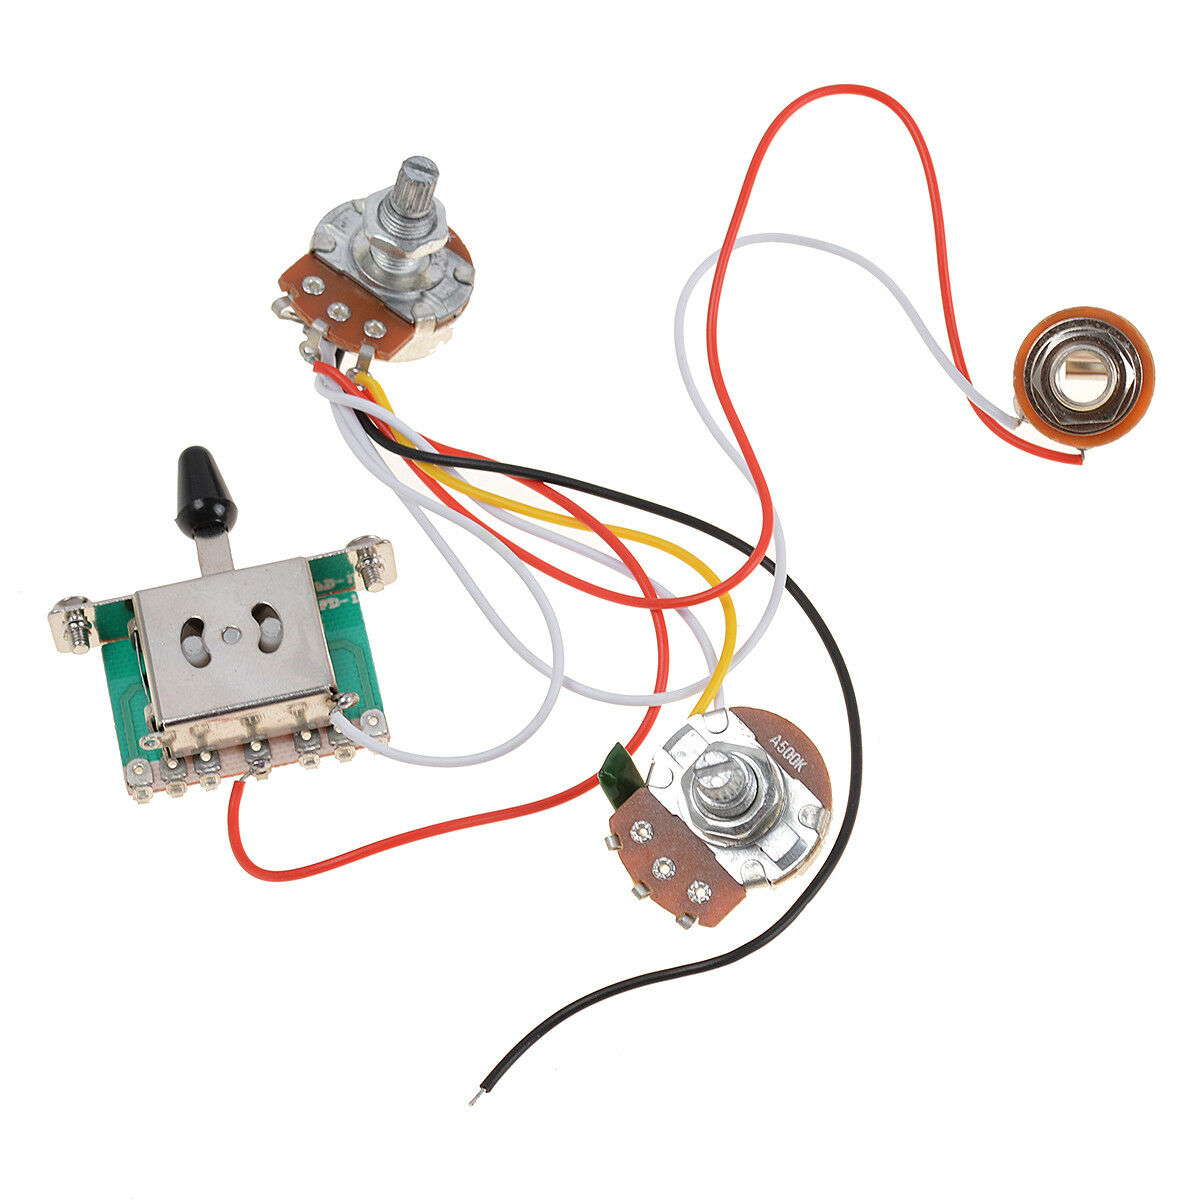 3 pickup guitar wiring harness prewired volume tone 1v1t ... guitar wiring harness volume tone tone